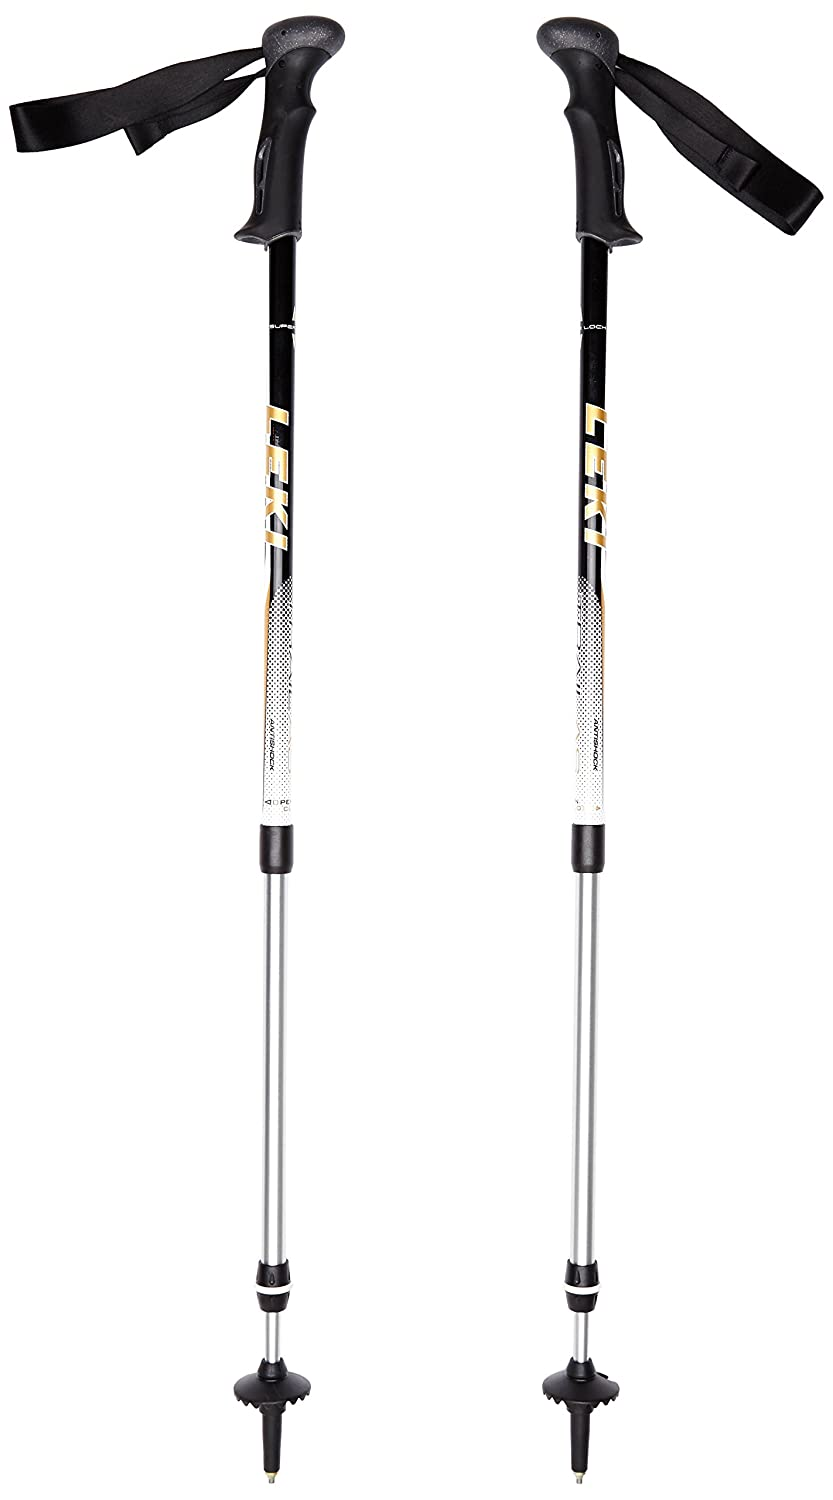 LEKI Wanderstock Trail AS, Black/Gold, 69-145, 634-2035